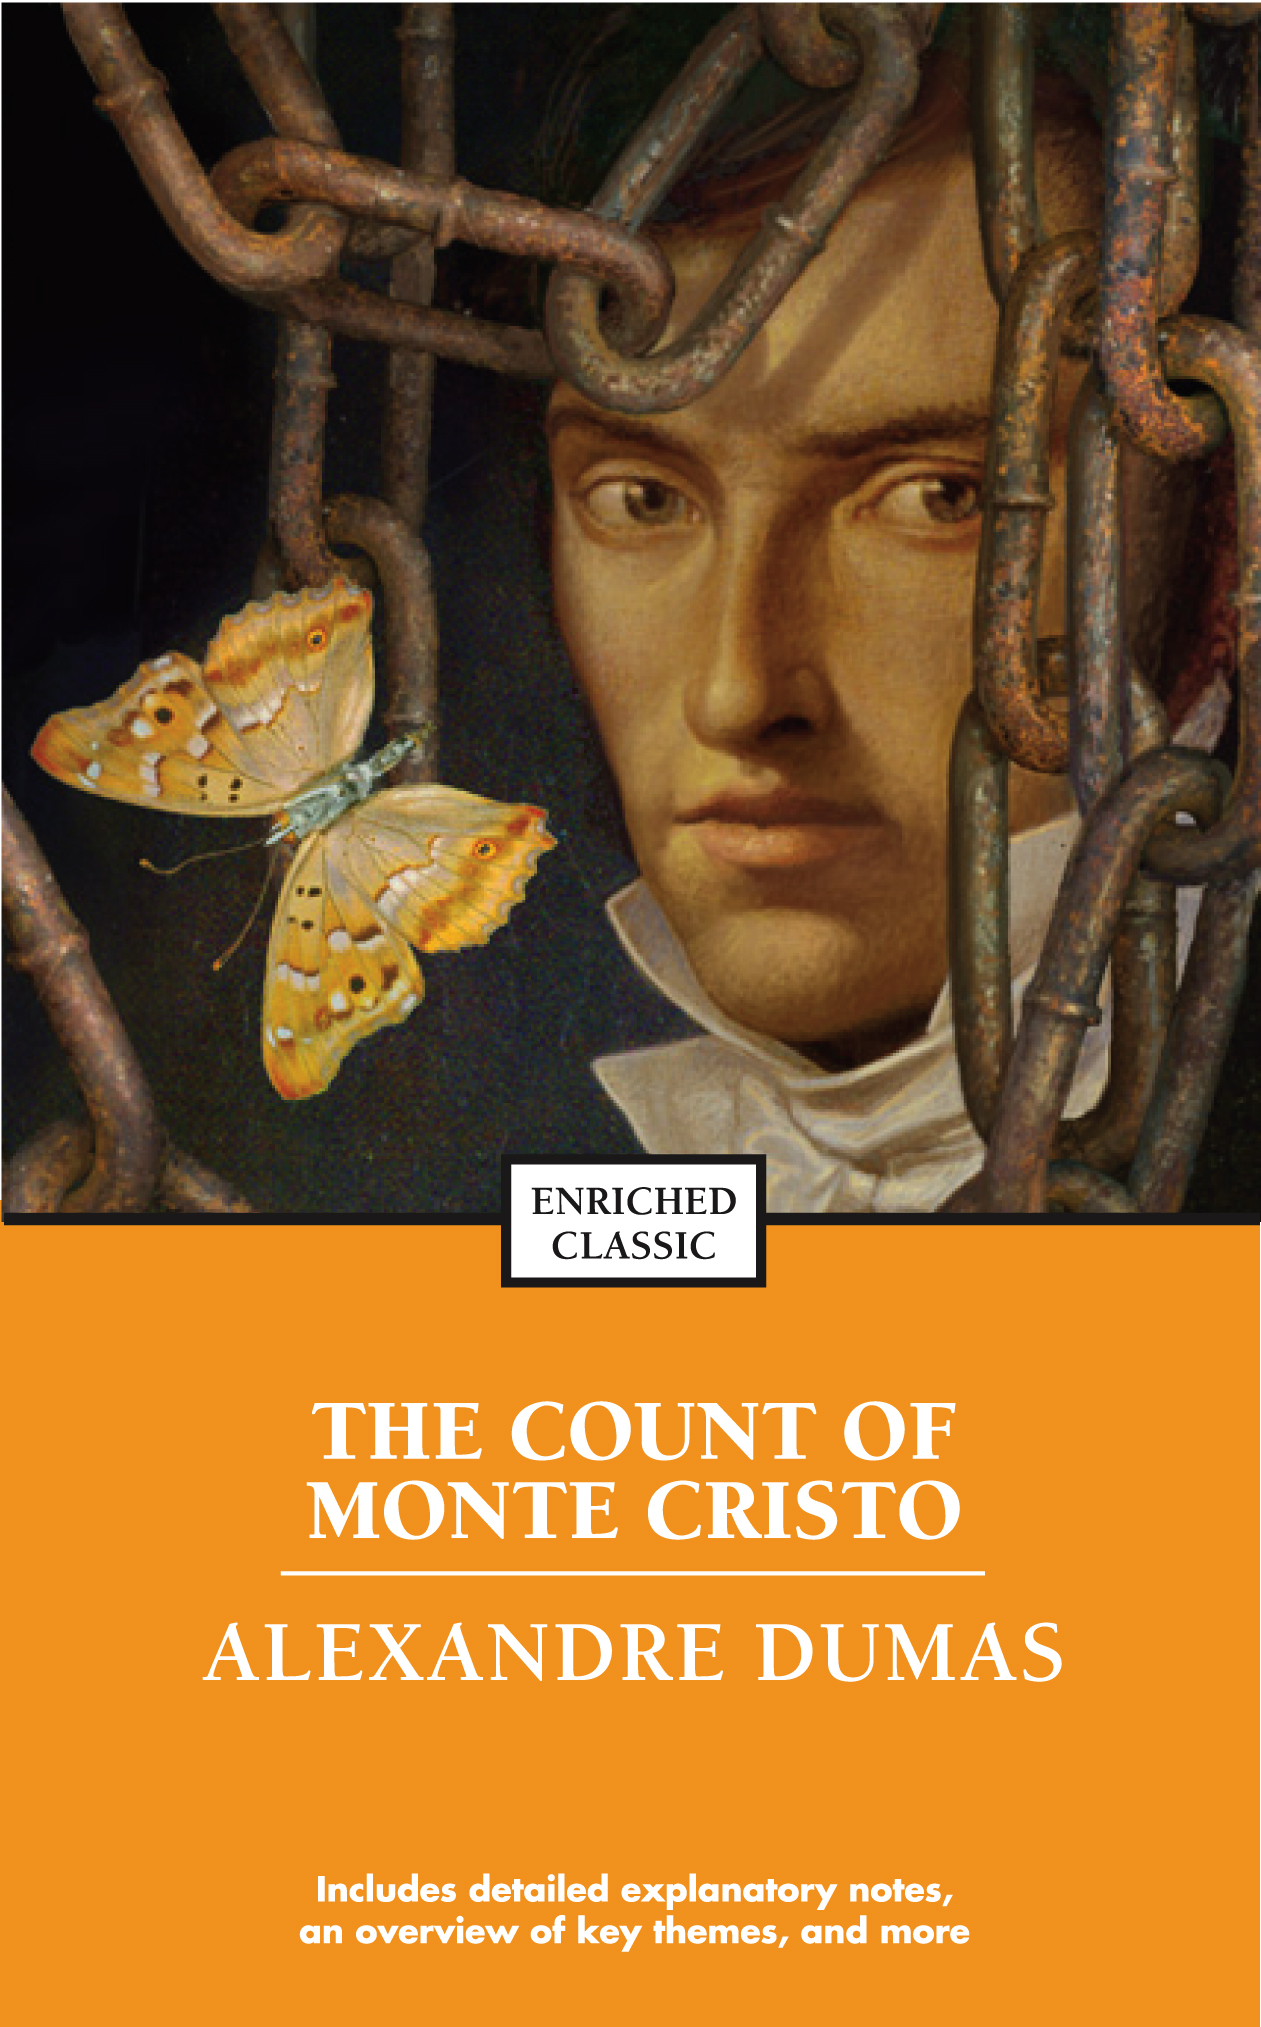 enriched classics books by anonymous aristotle and jane austen the count of monte cristo